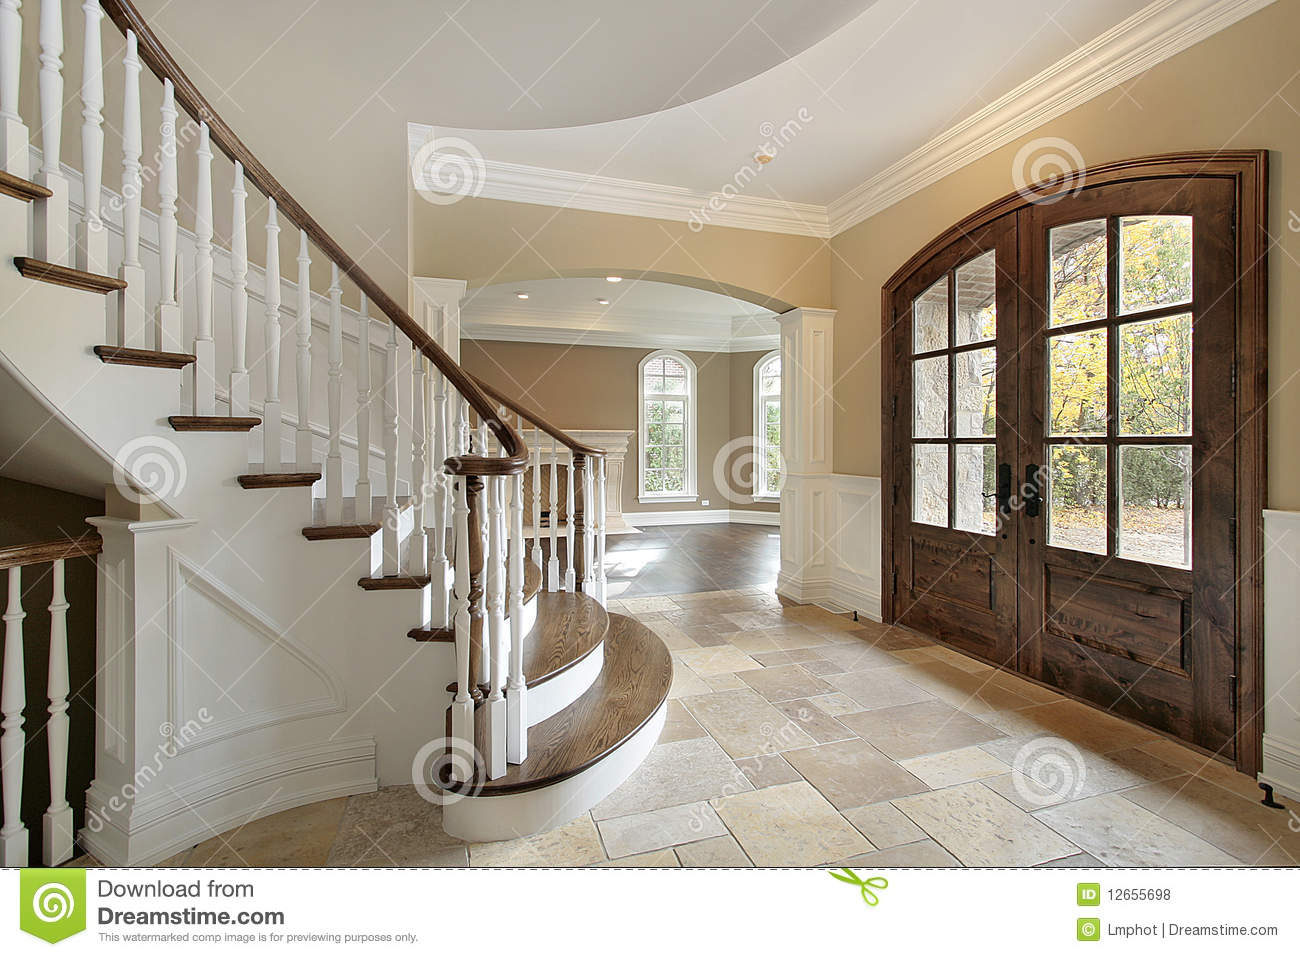 Foyer Clipart : Foyer in new construction home royalty free stock photos